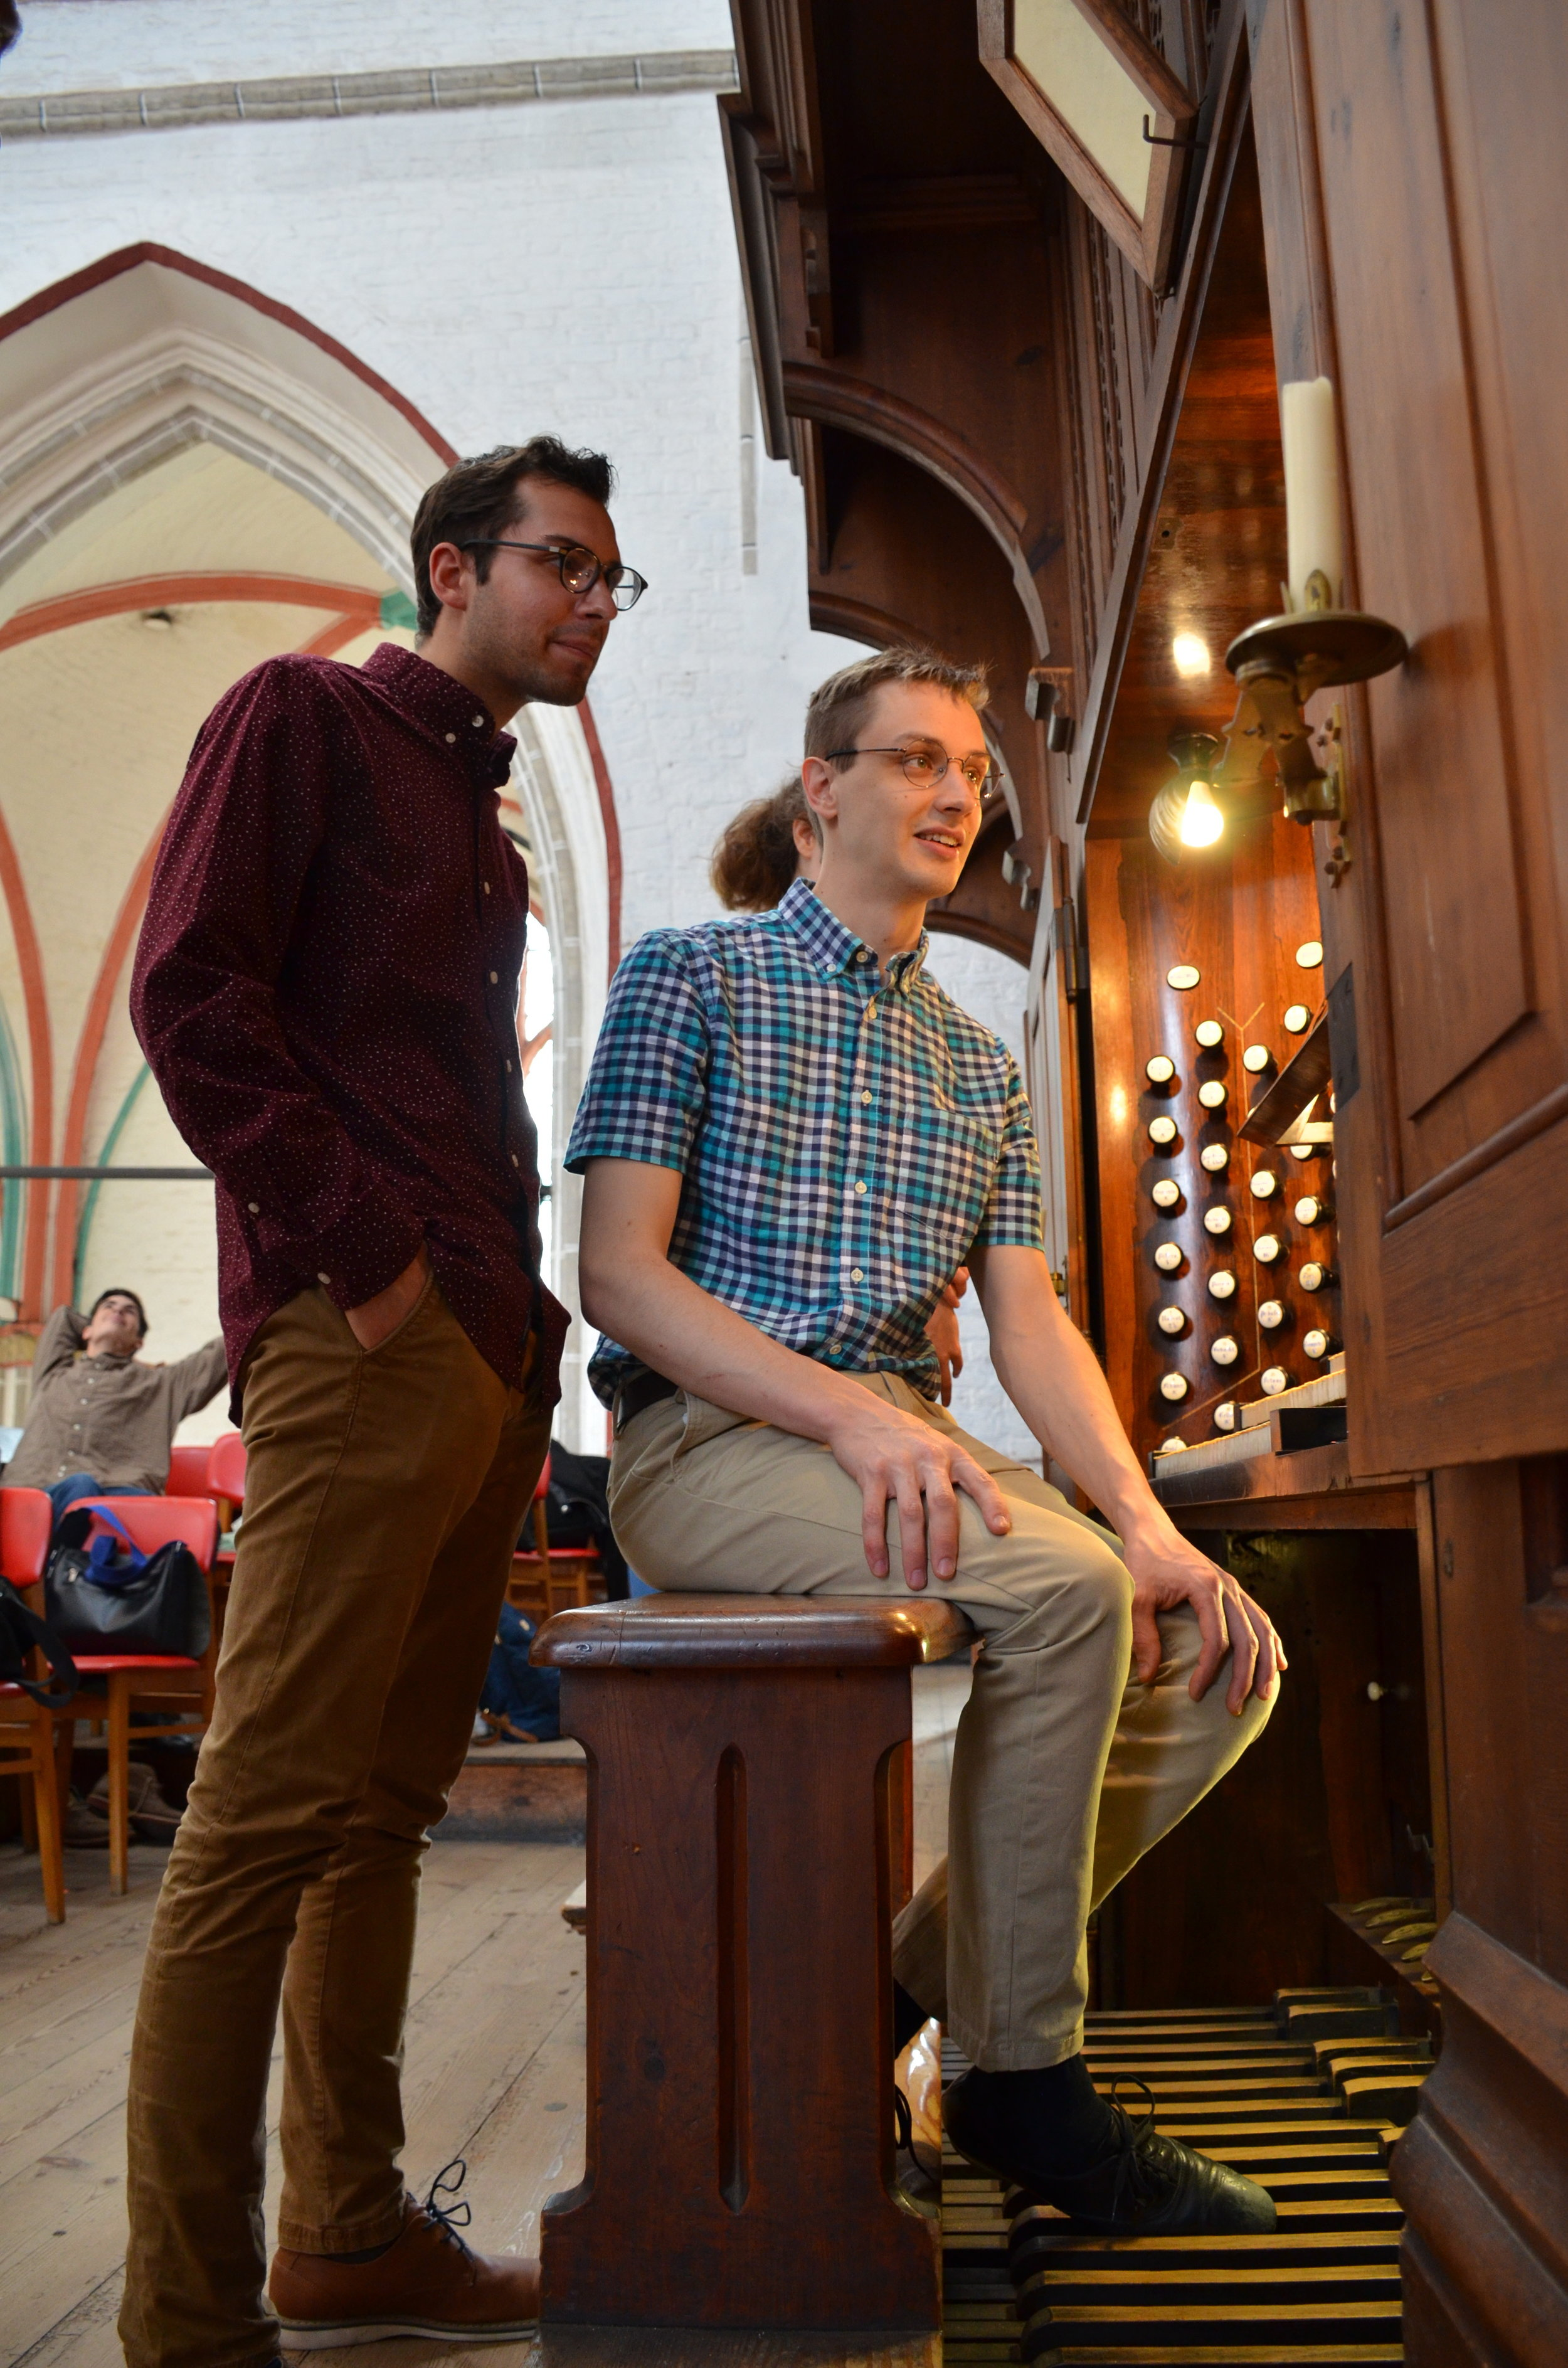 Alex Ross and Nick Capozzoli examine features of the 1871 Ladegast Organ, Schwerin Dom. Boston Organ Studio.